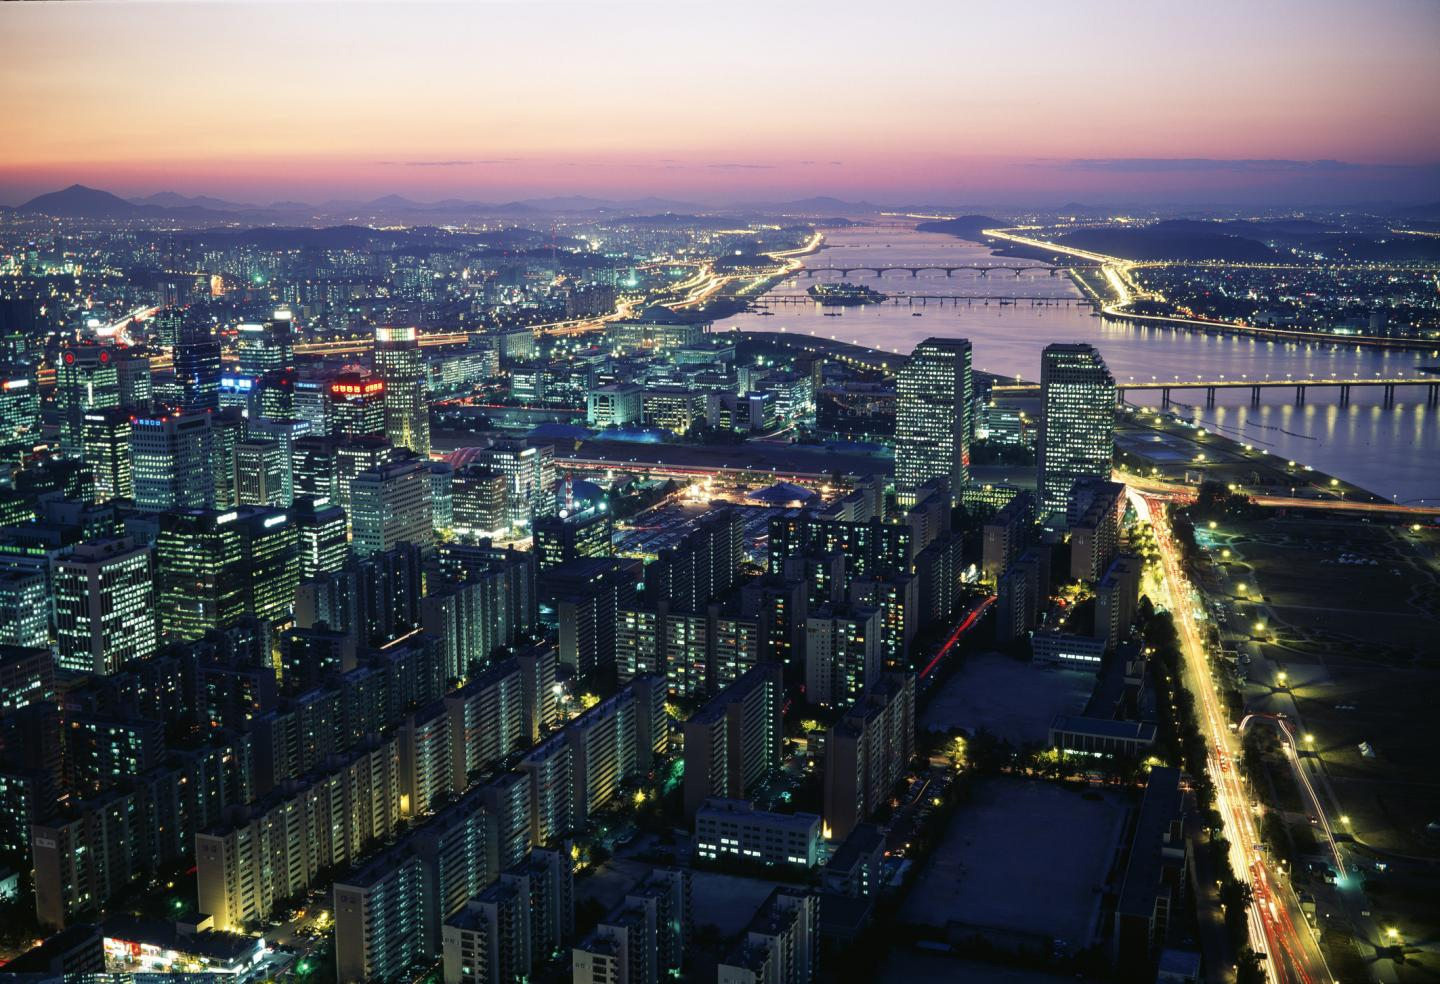 Seoul, One of the World's 27 Megacities